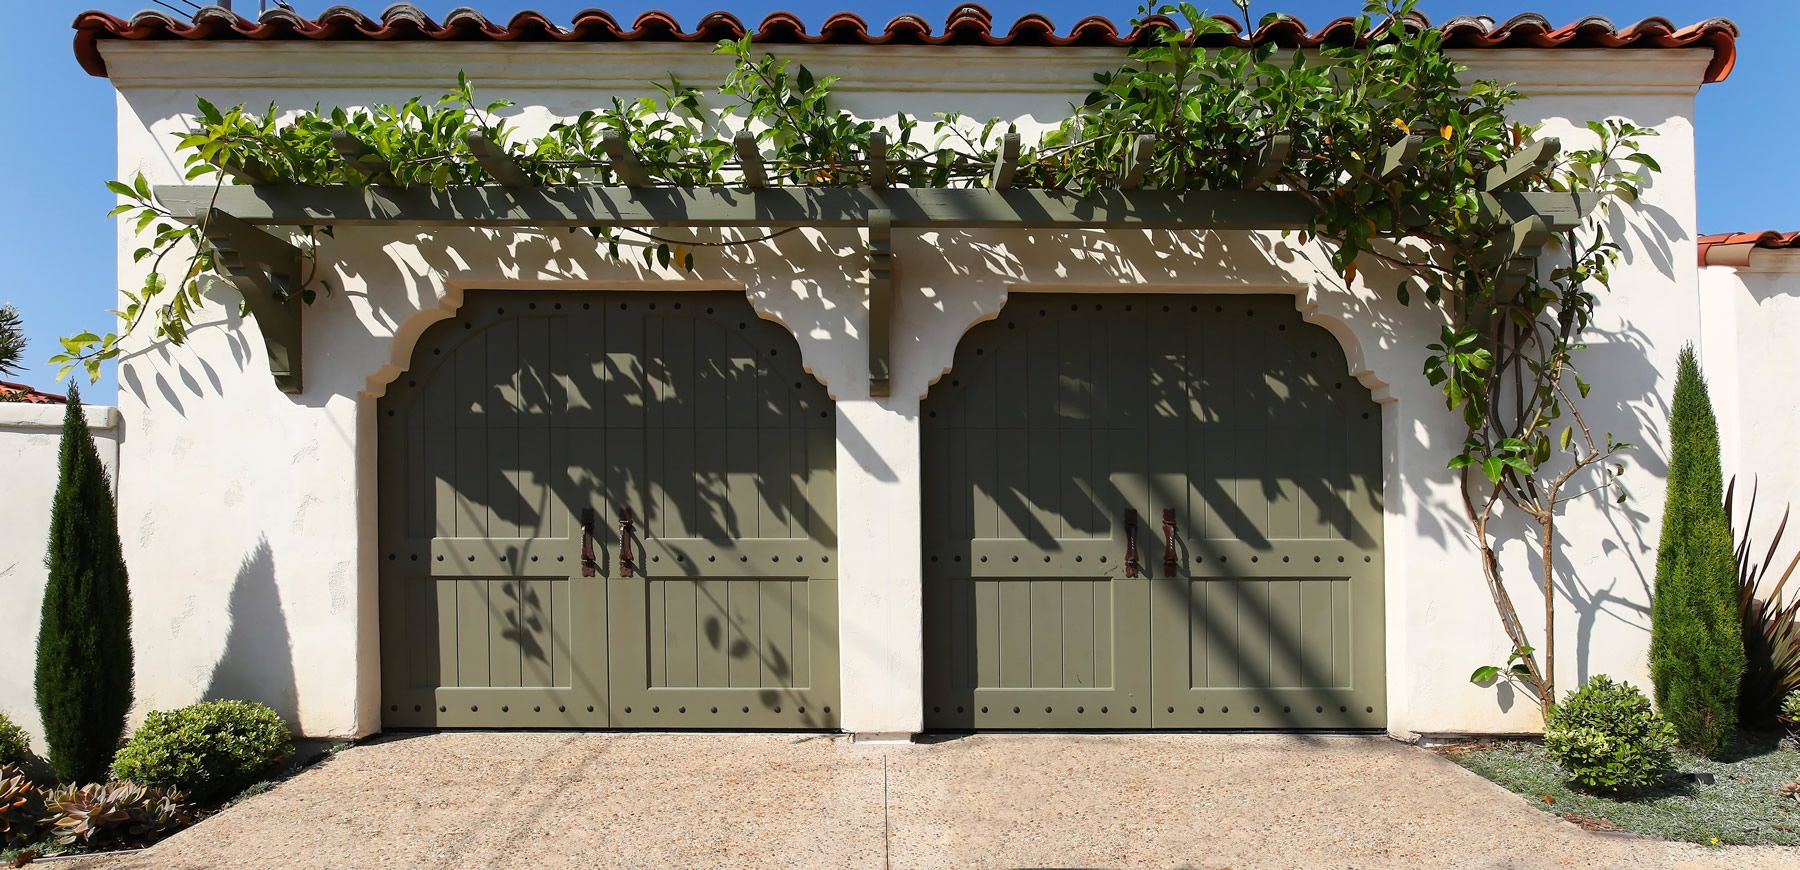 Garage Doors From Stunning Spanish Style Home With Magnificent Views In La Jolla Ca Sold For 1 Spanish Style Homes Spanish Style Bedroom Spanish Style Home